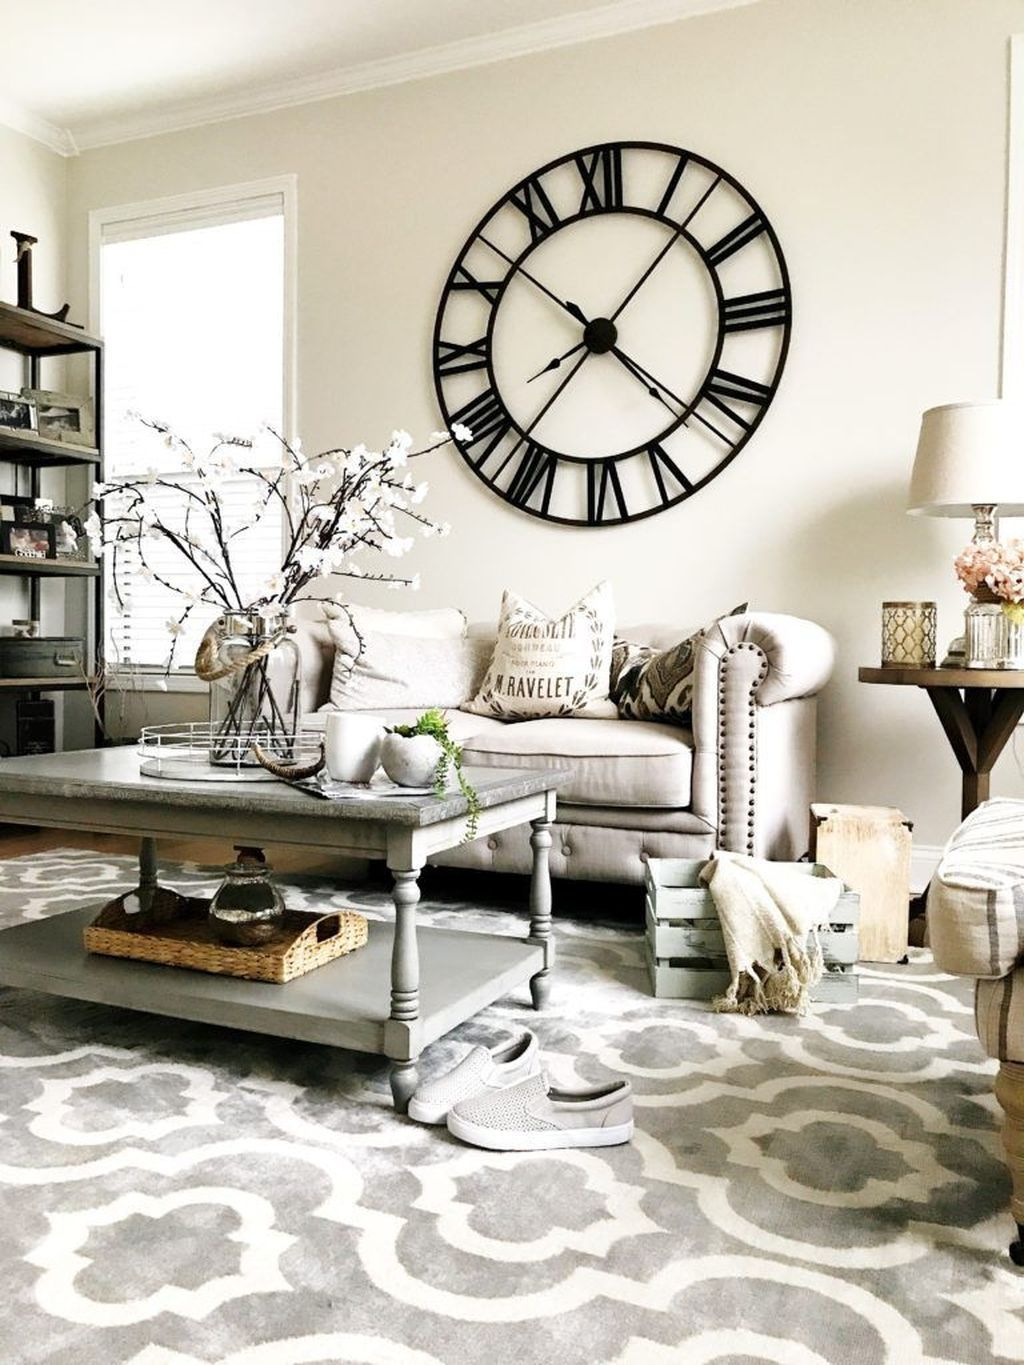 40 Unique Wall Decor Ideas With Clocks Wall Clocks Living Room Living Room Grey Living Room Clocks